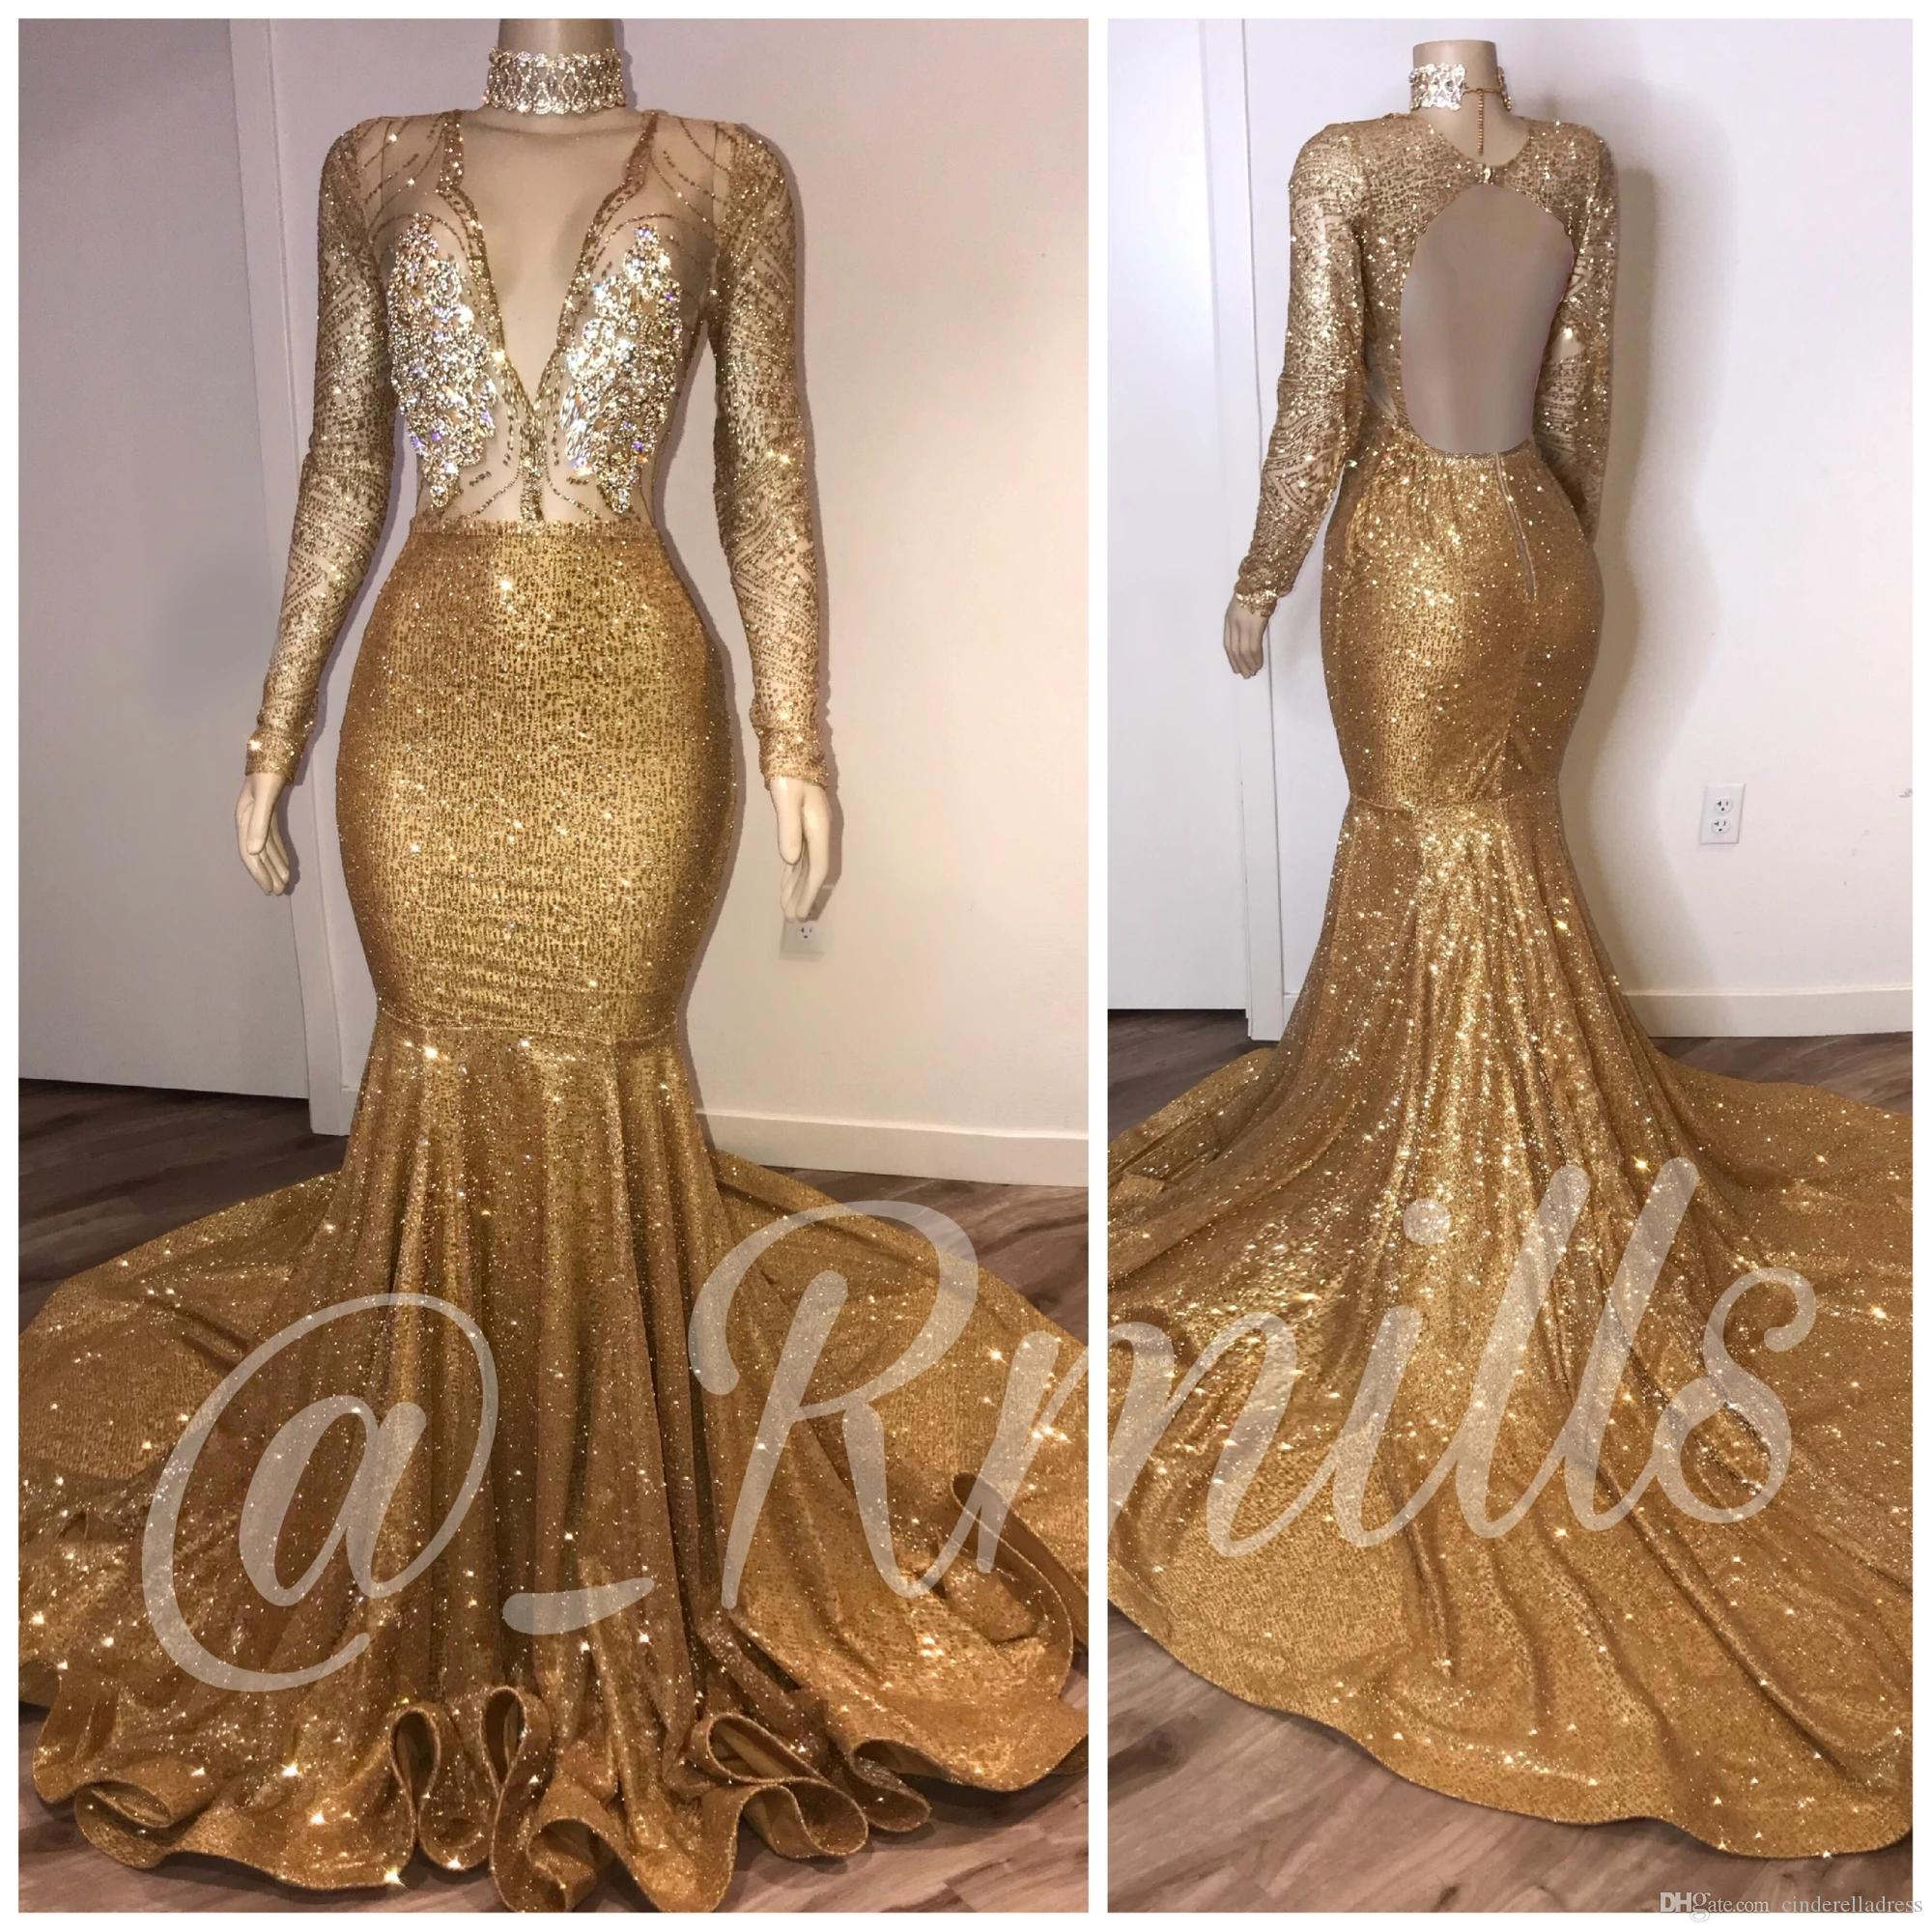 2020 Myriam Fares High Neck Sexy Gold Prom Dresses Deep V Neck Sequined Long Sleeve Evening Gowns